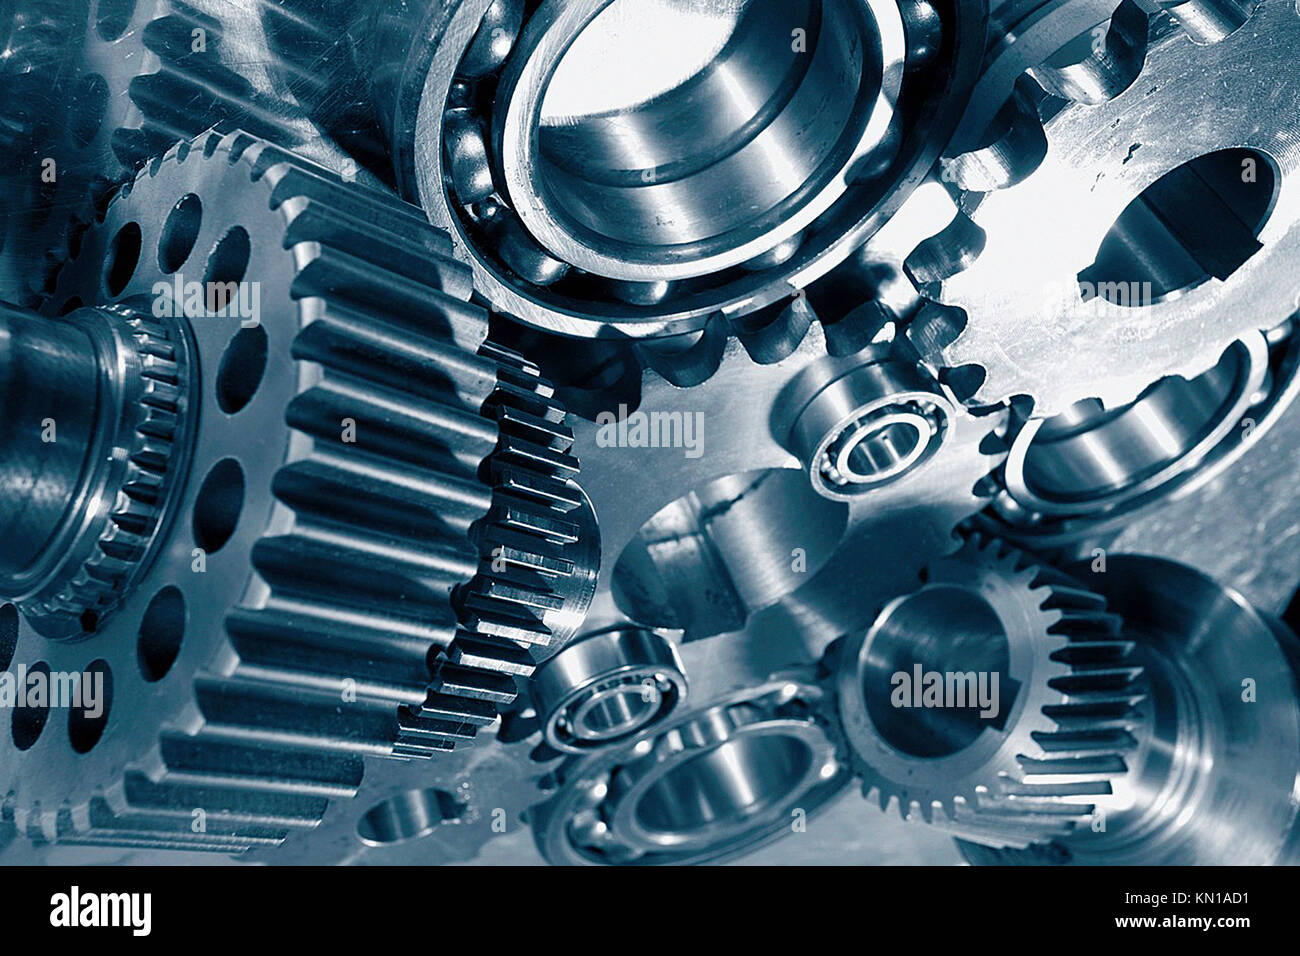 machine parts, gear wheels, cogs and ball bearings against steel, blue toning concept. Stockholm.sweden - Stock Image